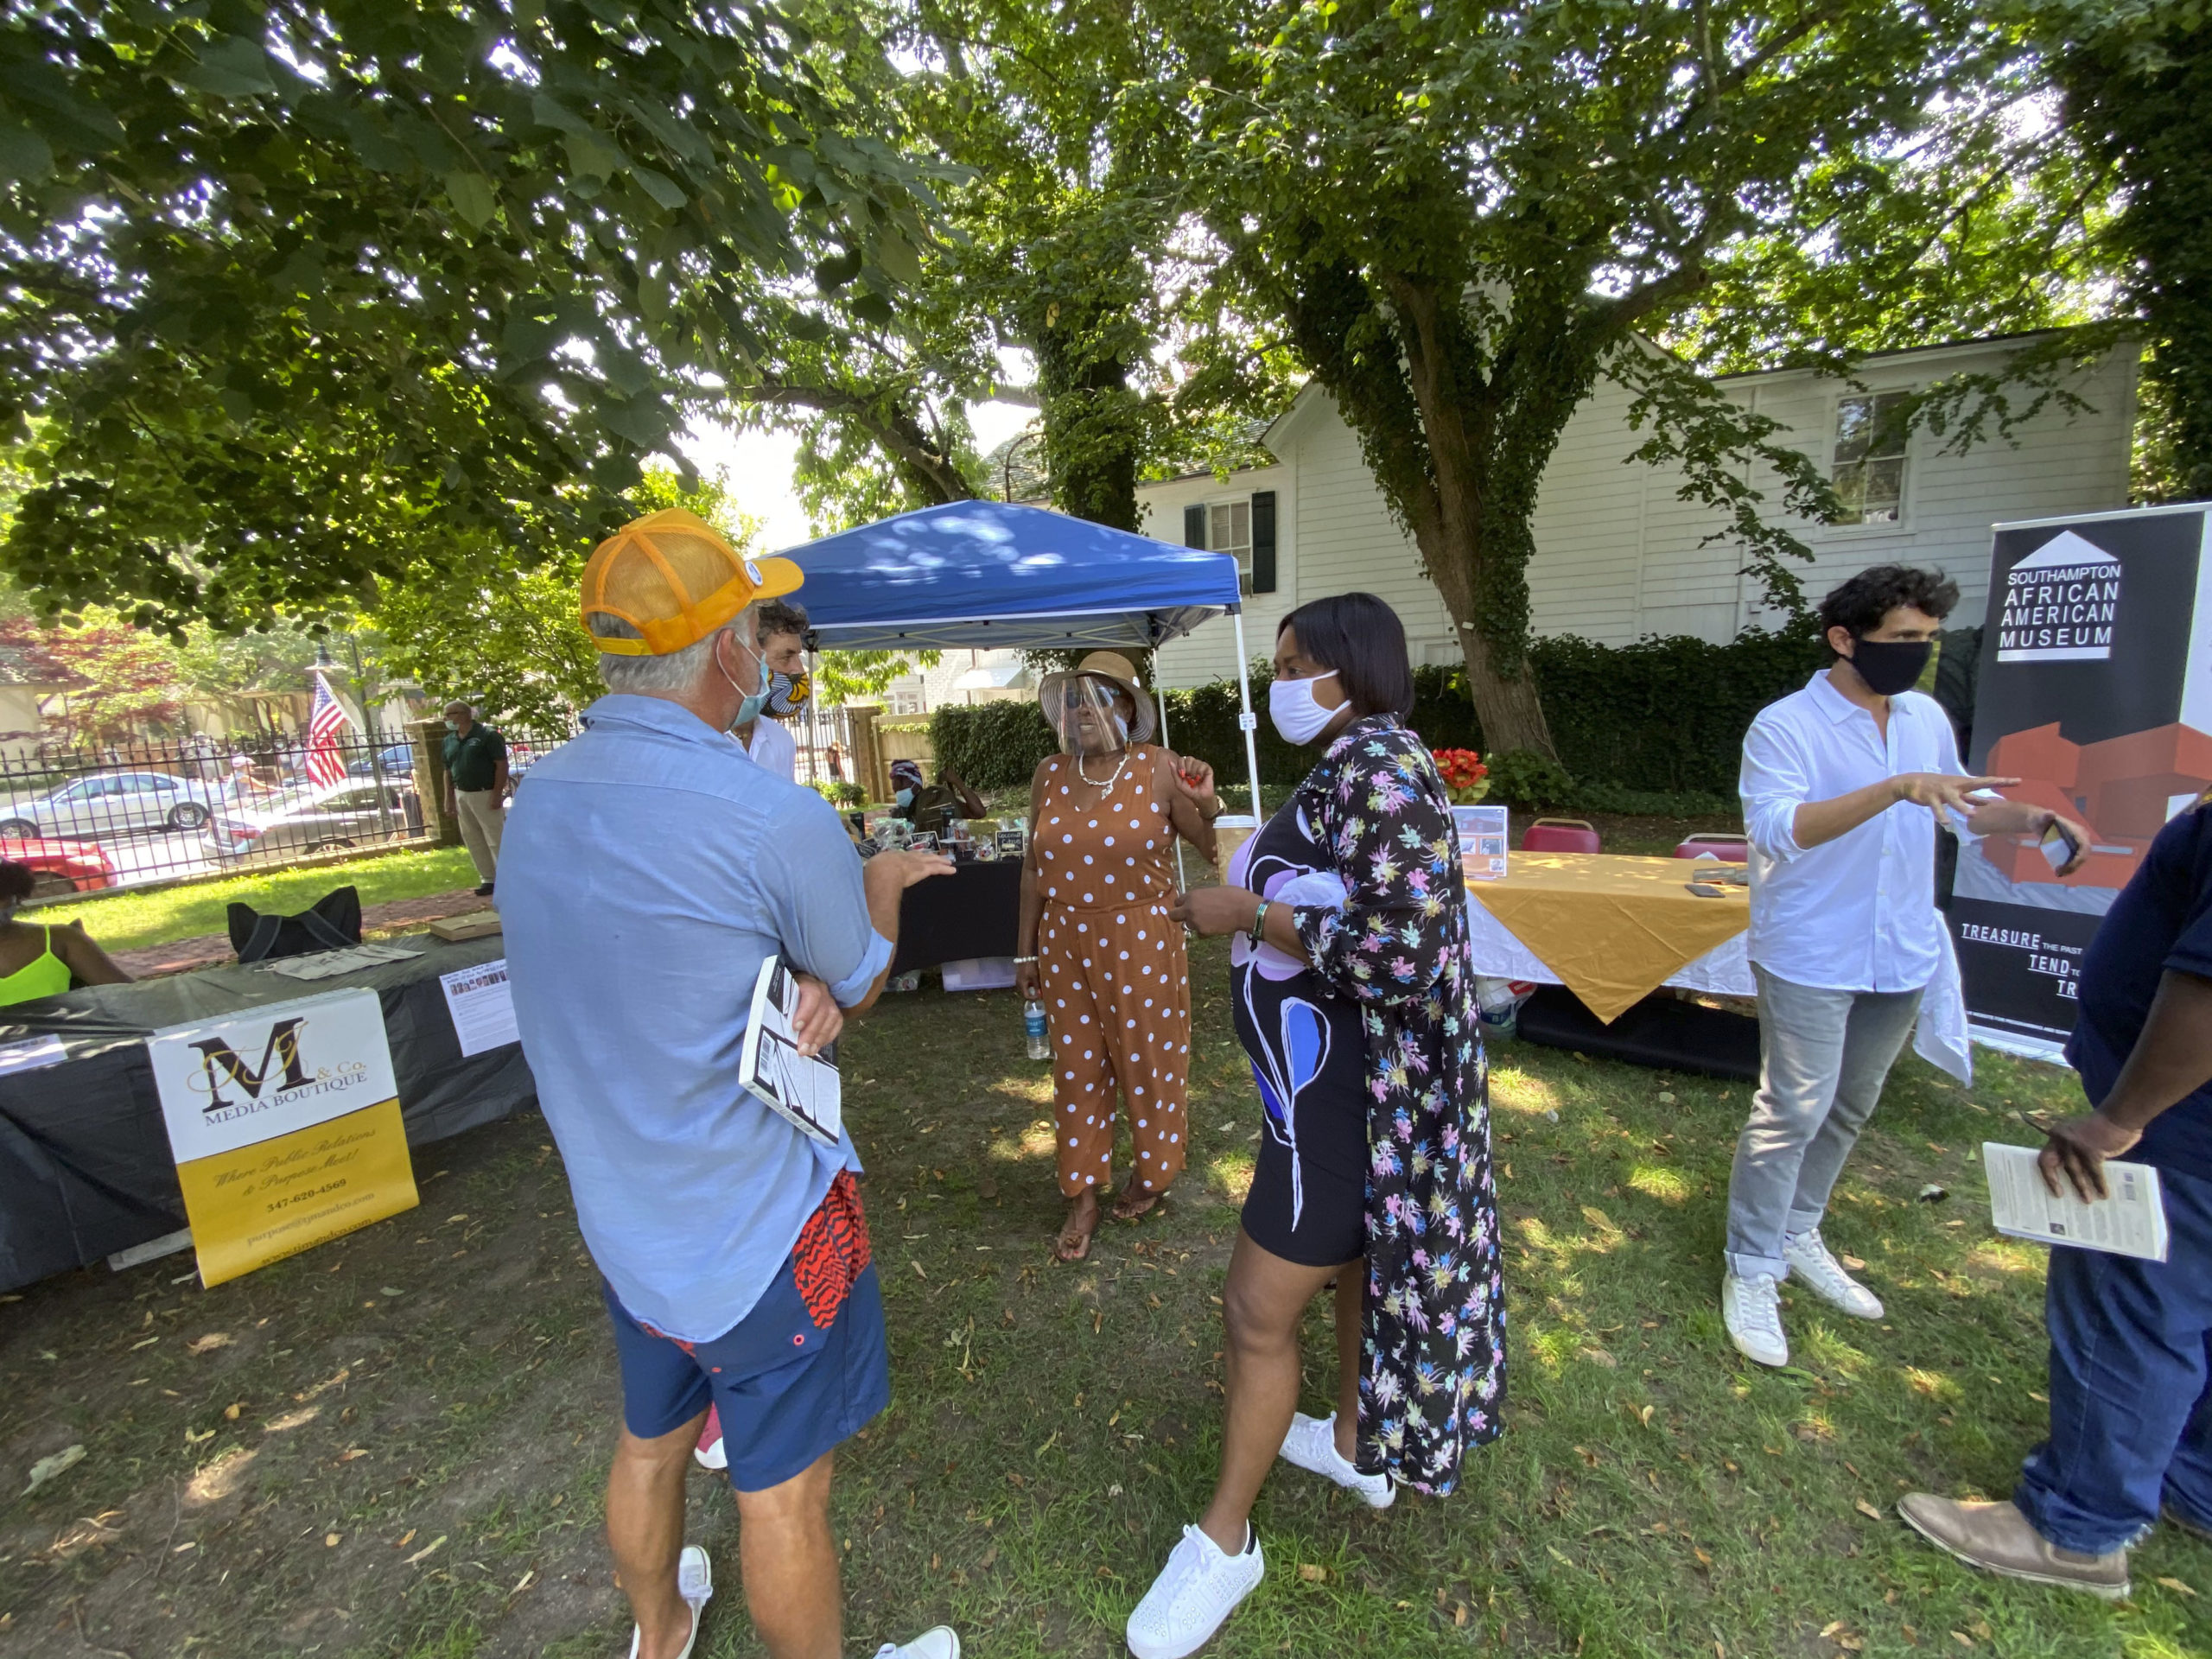 Brenda Simmons, center, at the Southampton Arts Center Unity Fest on Sunday afternoon.  DANA SHAW